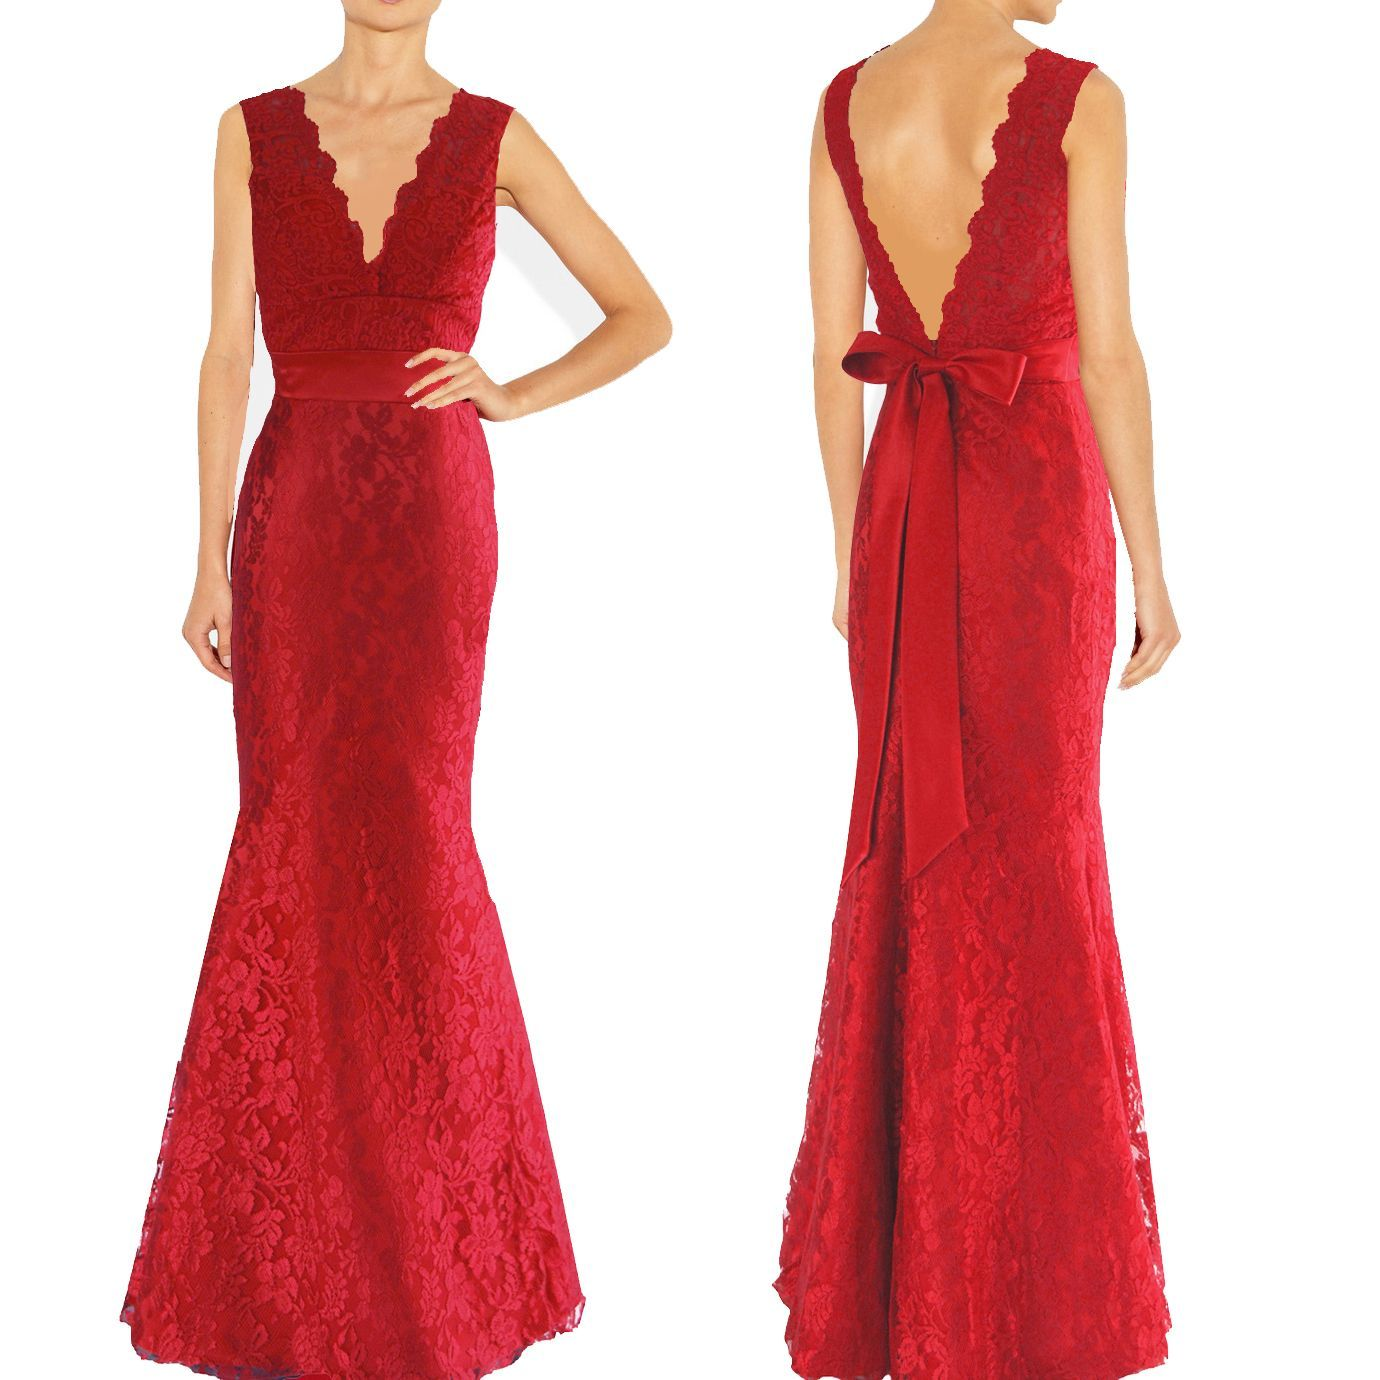 Dishy red v neckline lace full length formal dress 9007rd qpid elegant design v neckline lace dress lace has a beautiful scalloped design red lace over red satin a satin waist band with bowtie completes the look ombrellifo Image collections